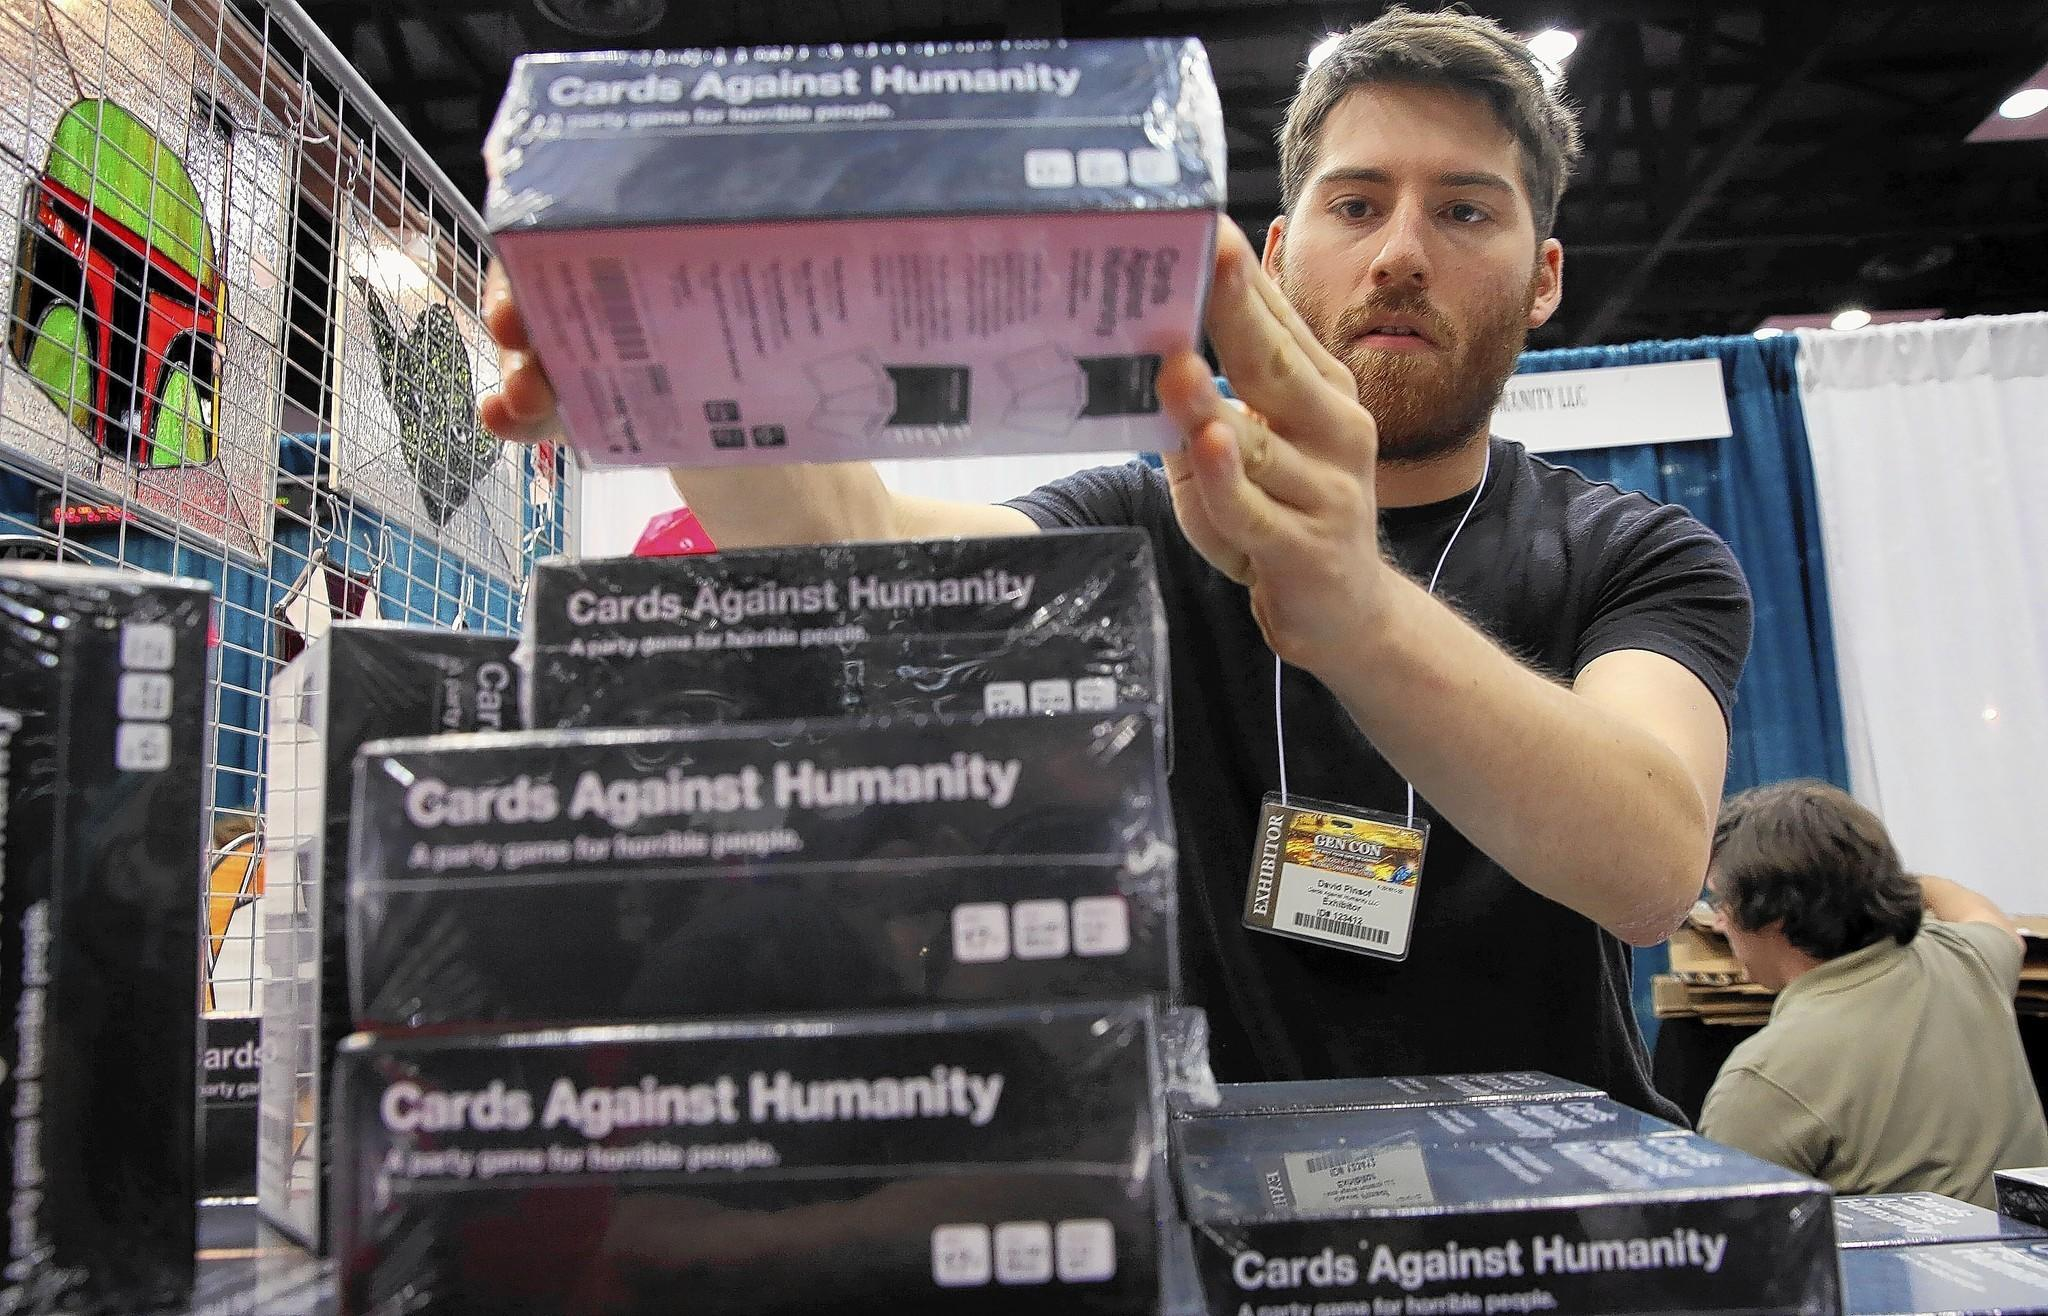 At a gaming conference last year, Dave Pinsof stacks boxes of Cards Against Humanity, which has topped card and game sales on Amazon for several years. Pinsof is one of the creators of the game.